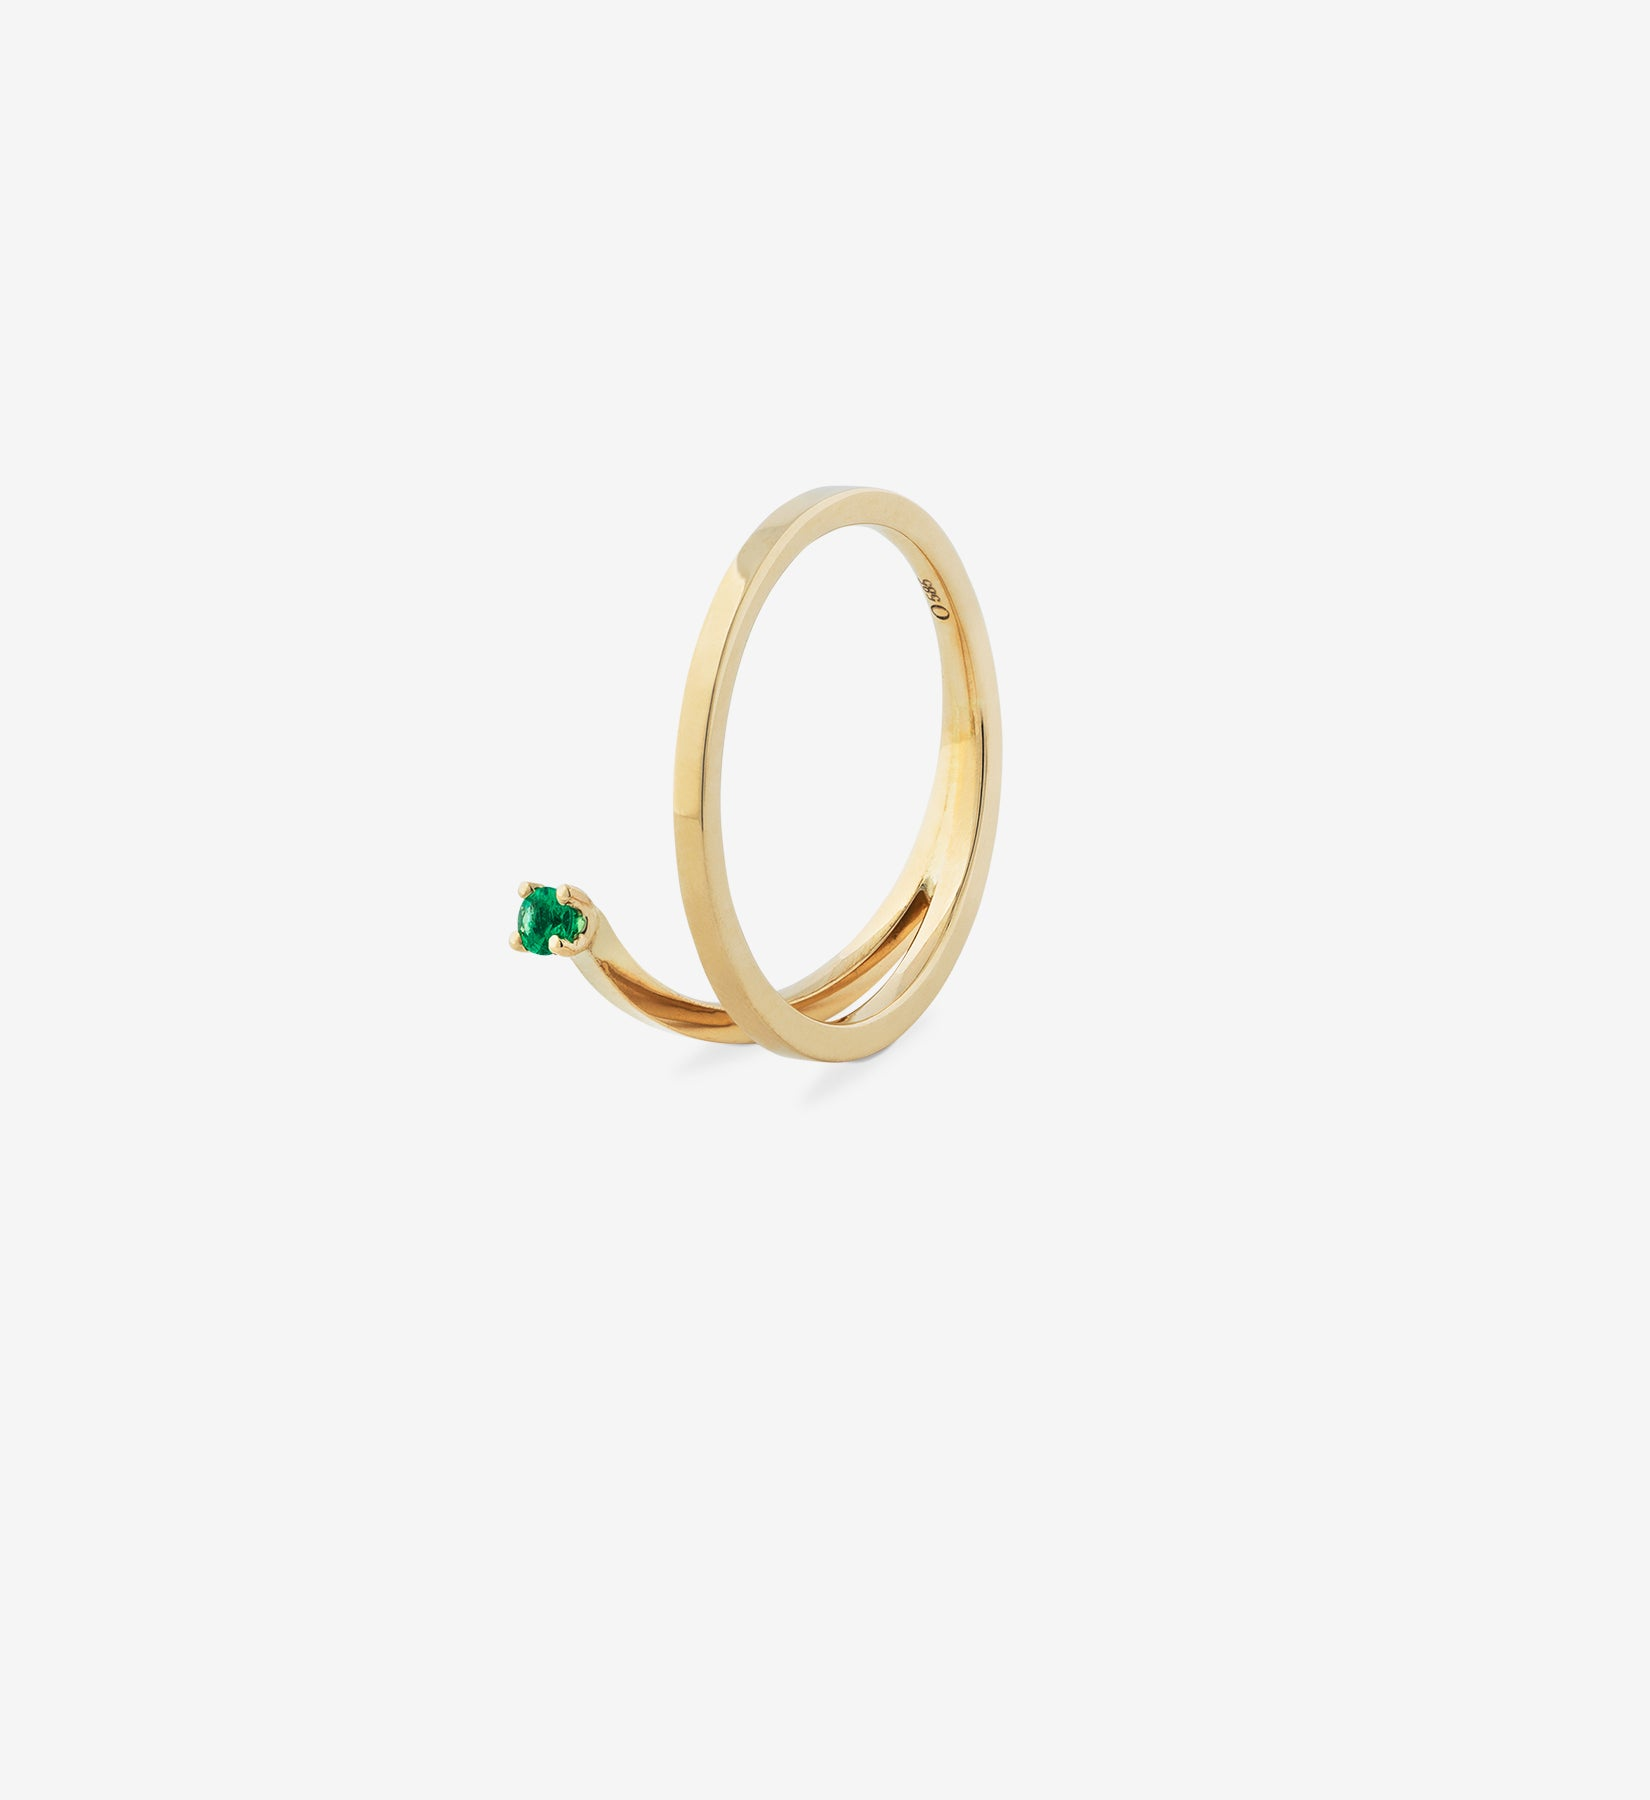 OUVERTURE, Fine jewelry, 14K gold, diamonds, golden ring, diamond ring, golden earring, diamond earring. Handcrafted jewelry. Designed in Berlin. Honestly priced. Demifine. Earparty. Stacking rings. Engagement ring, wedding ring, solitaire diamond ring, floating diamond ring, emerald ring. floating emerald diamond spiral ring